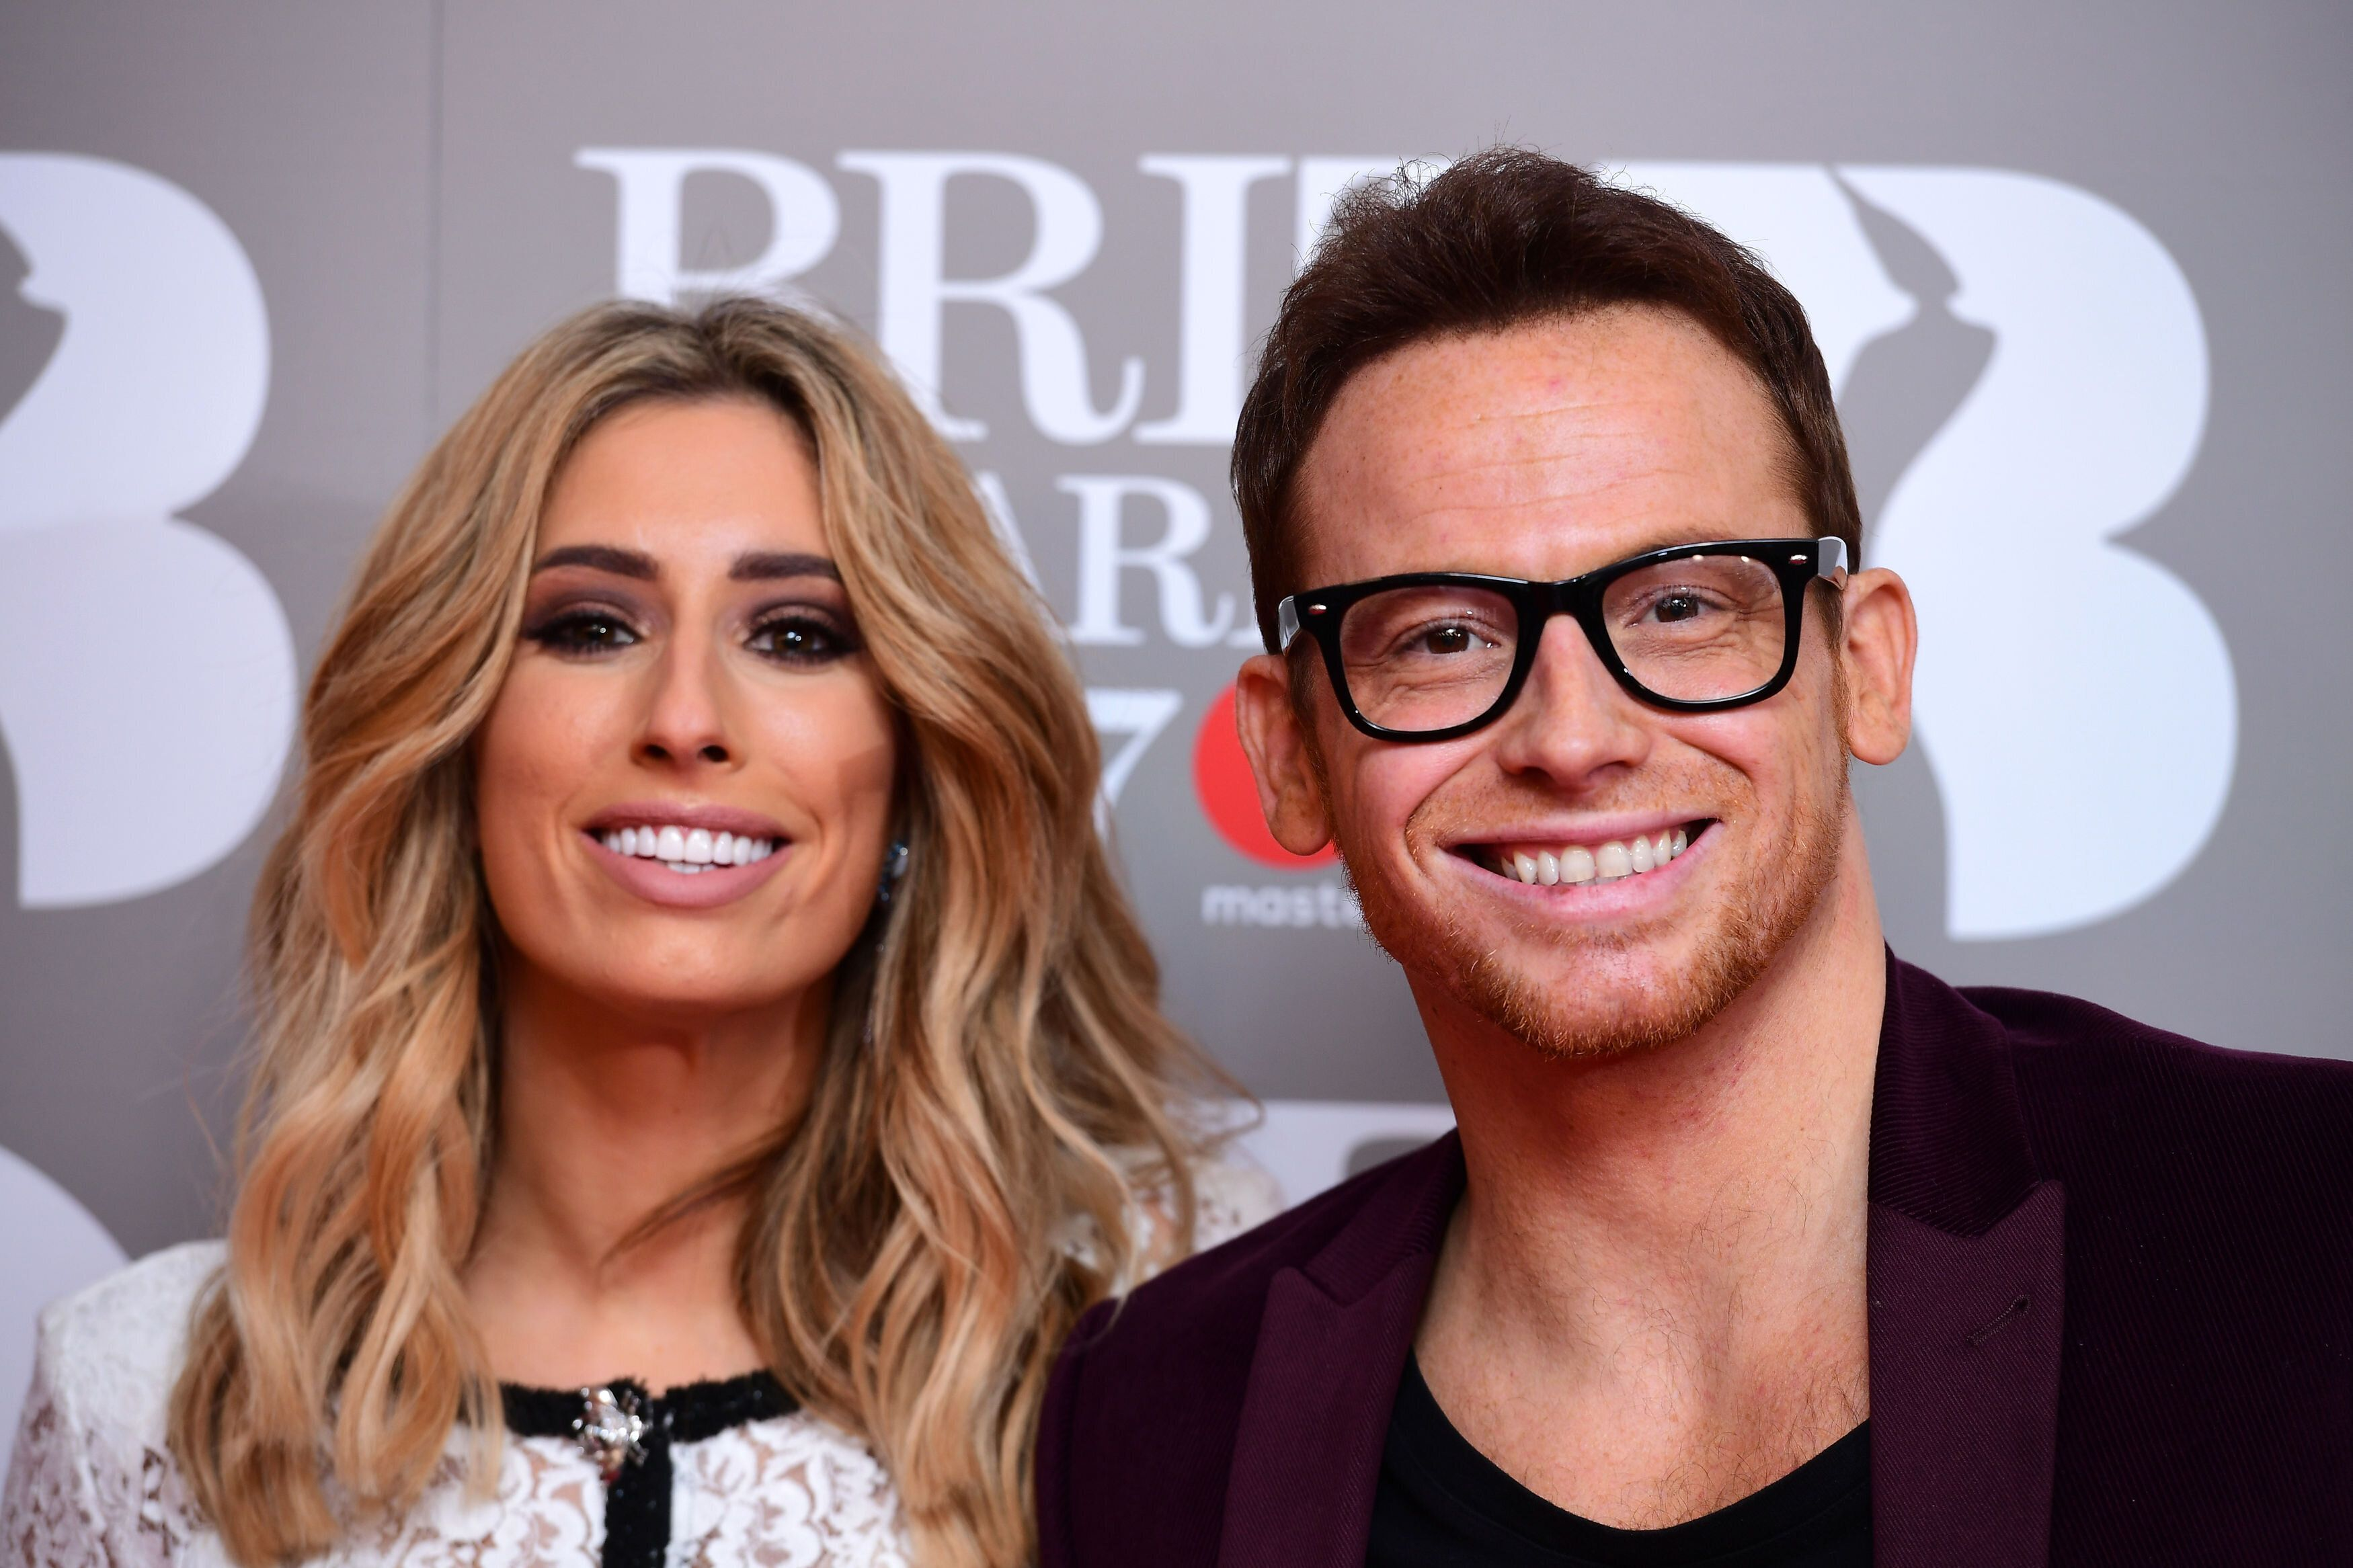 Stacey Solomon and Joe Swash attending the Brit Awards at the O2 Arena, London. (Photo by Ian West/PA Images via Getty Images)